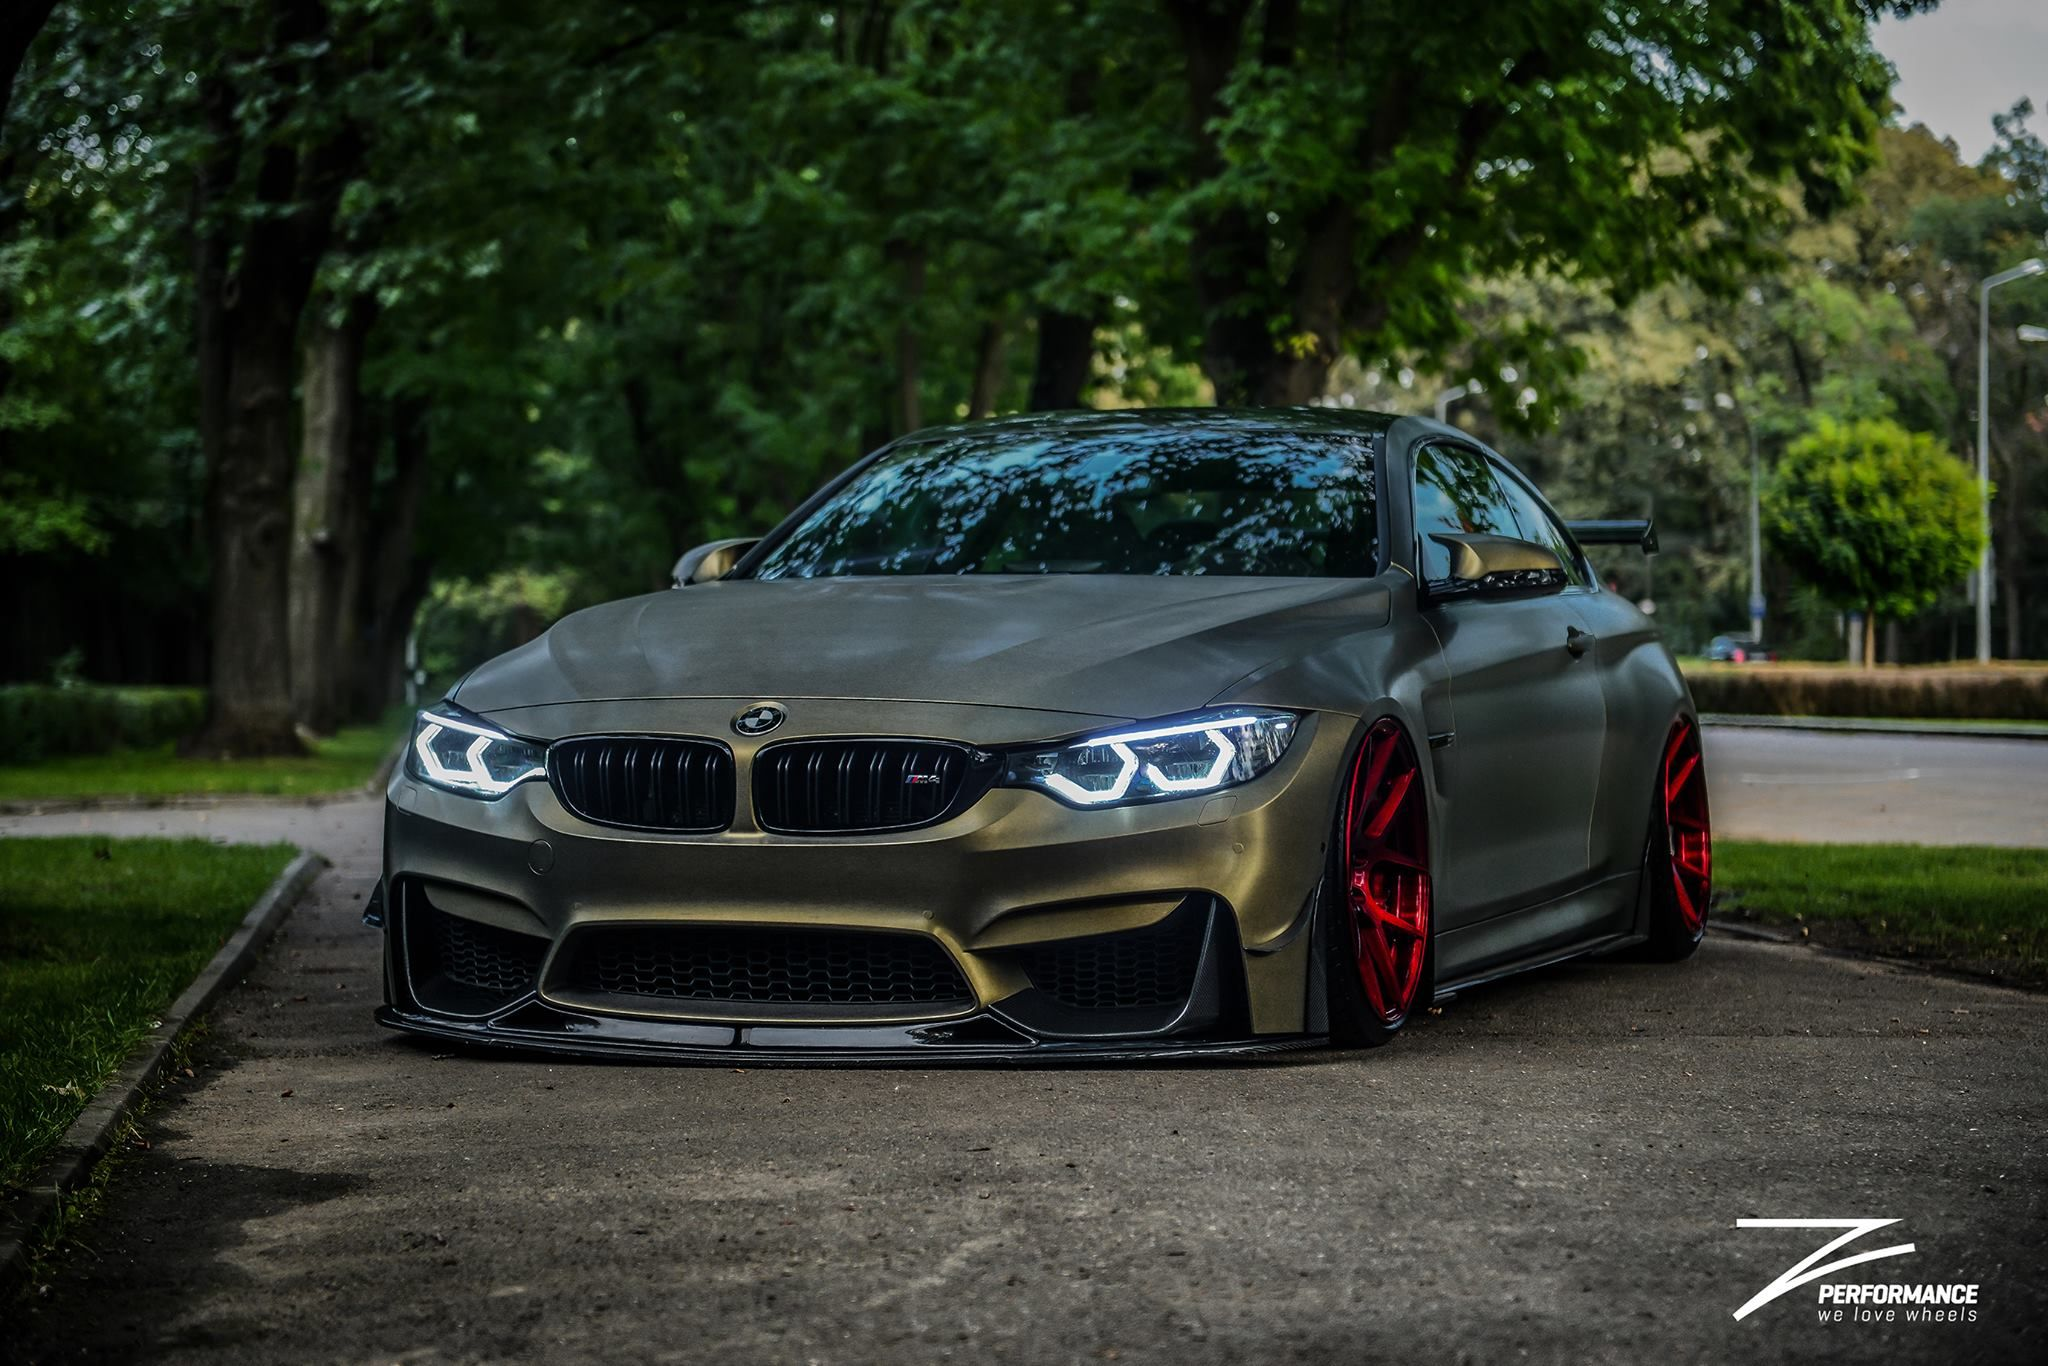 Bmw M4 F82 Cars Pinterest Bmw M4 Bmw And Cars